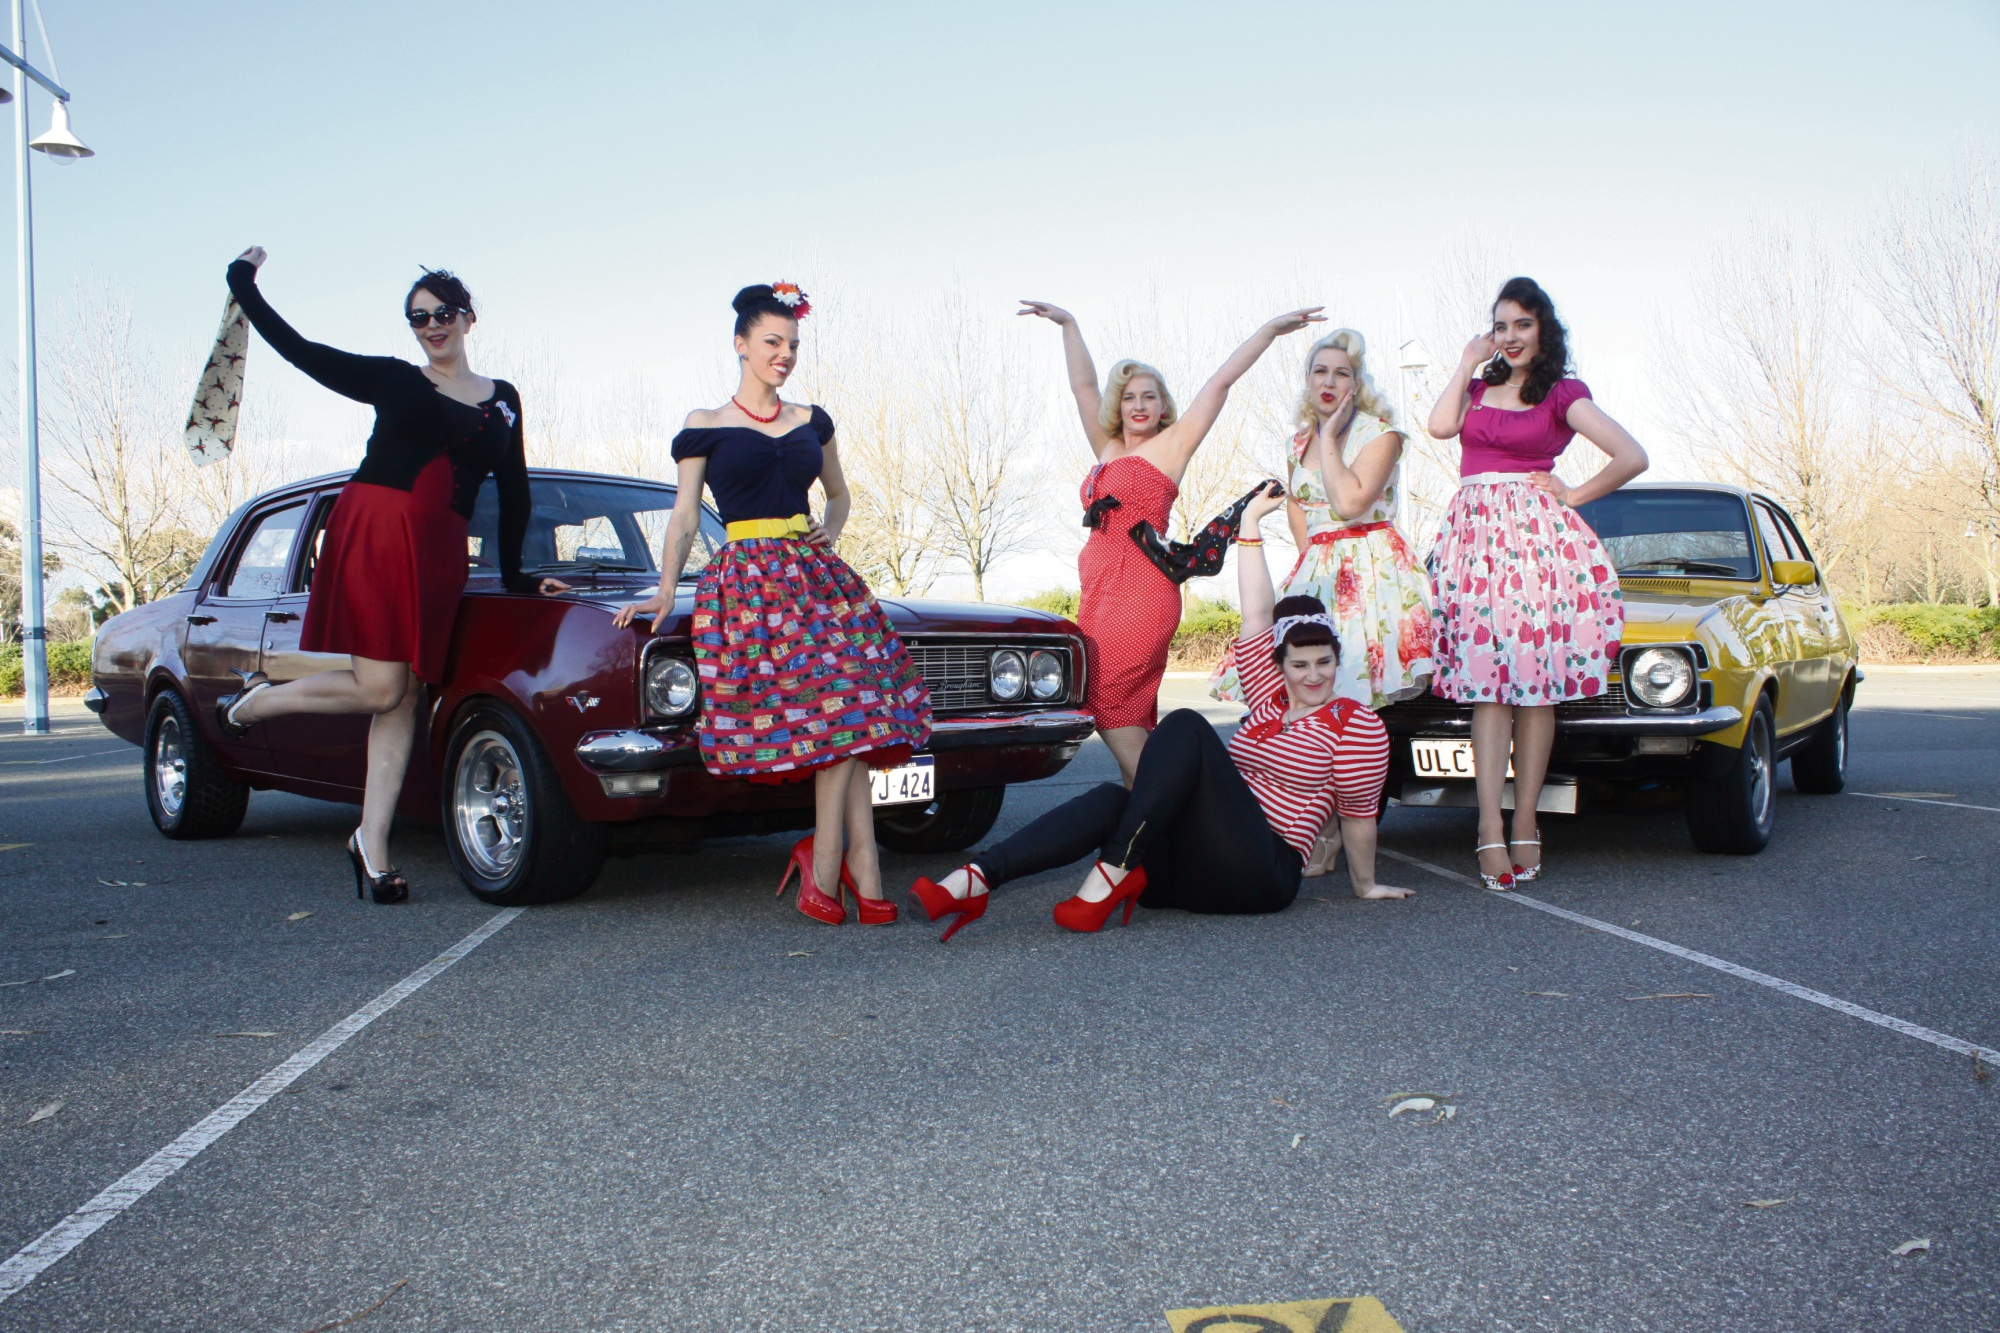 Pinup culture being embraced by modern women